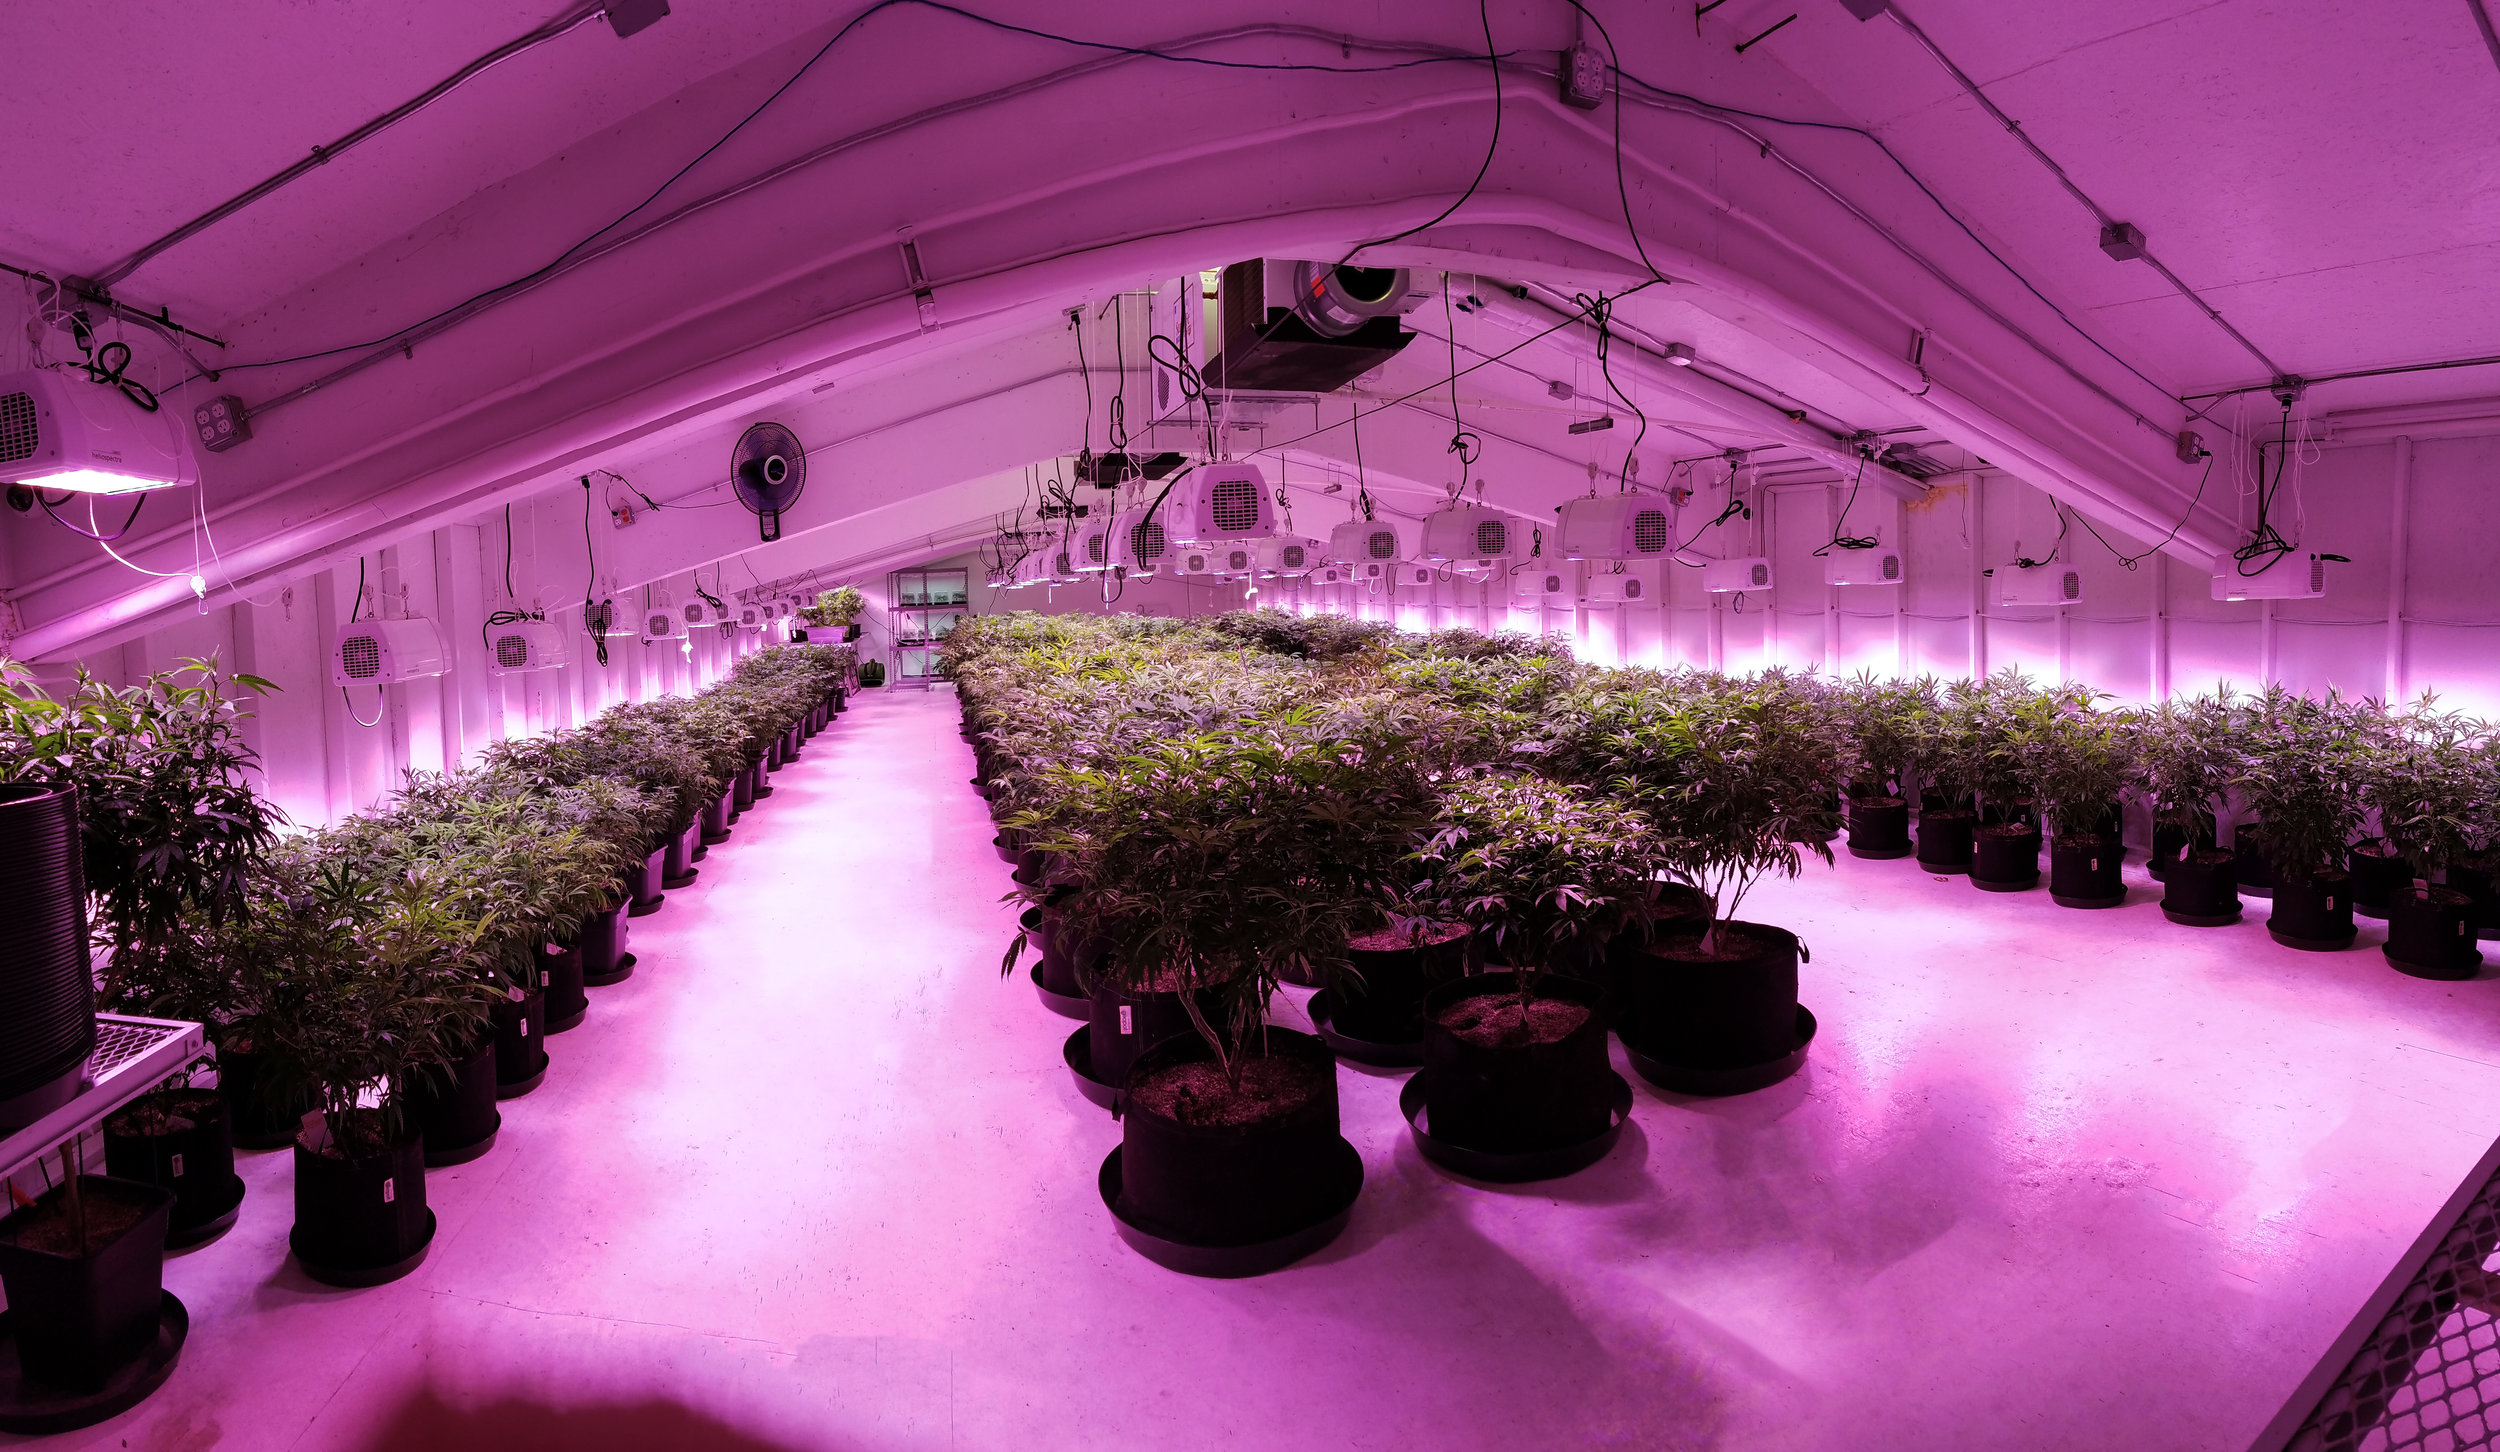 led-grow-cannabis-consultants.jpg